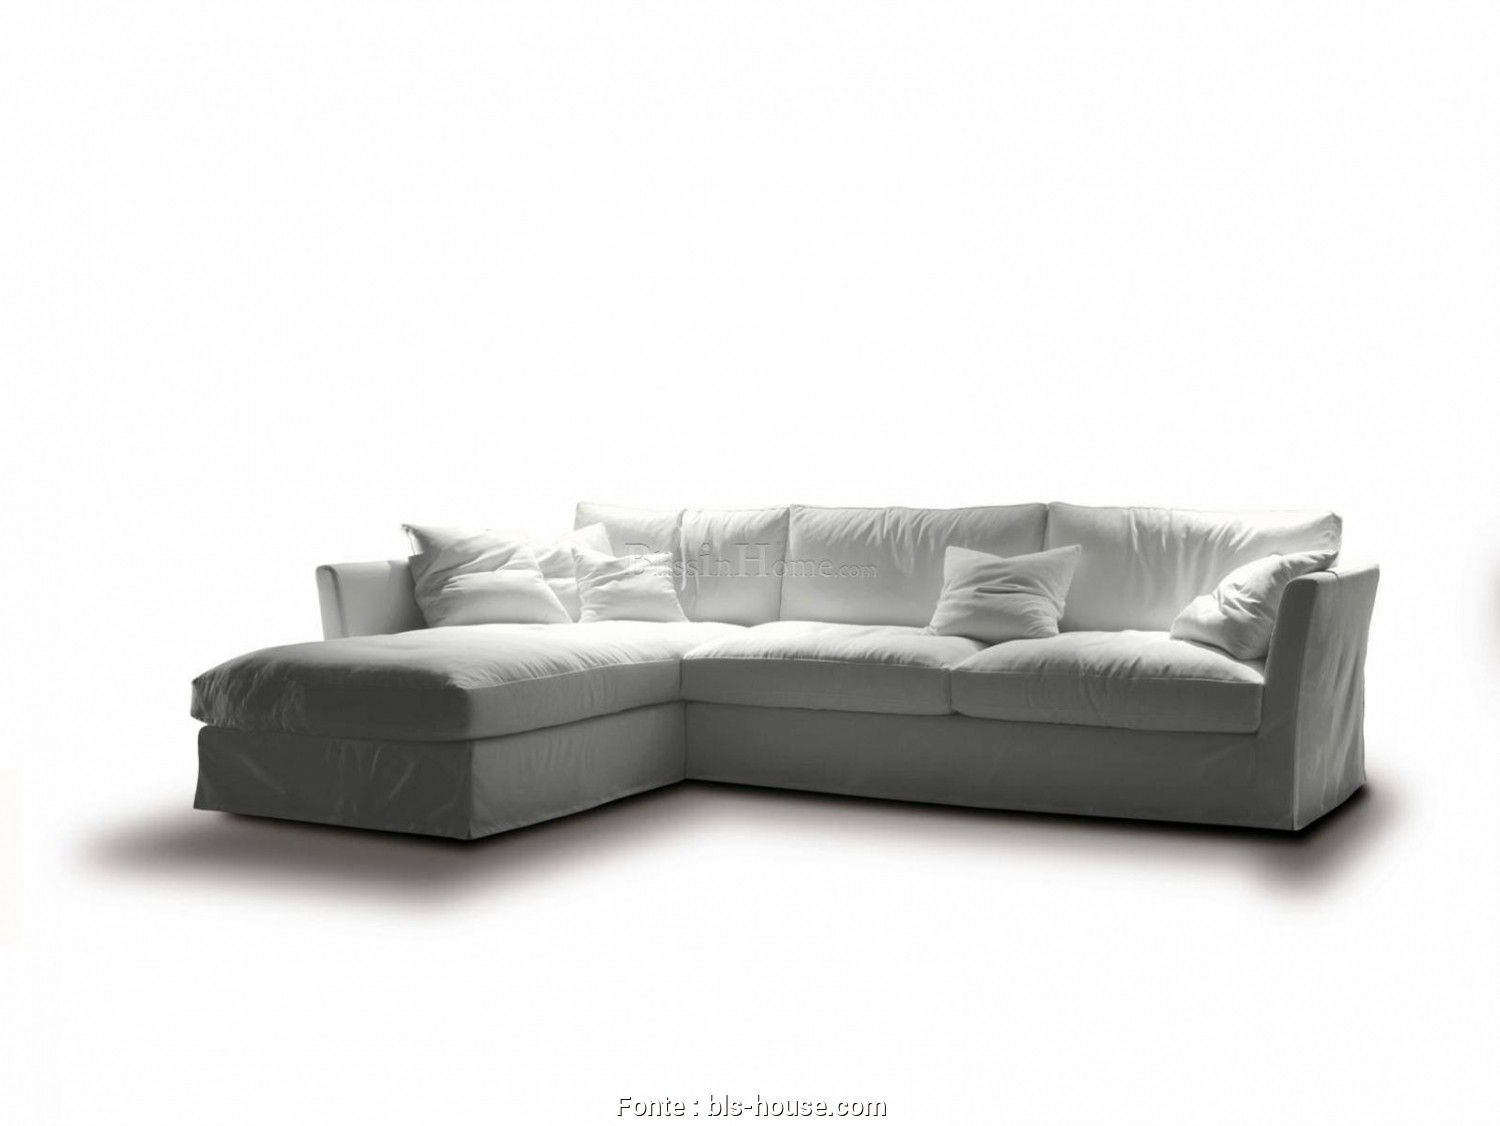 Poltrone Sofa Divani, Bellissima Buy Cheaper Divani E Poltrone Sofa Brad-2 4, From Italy In The